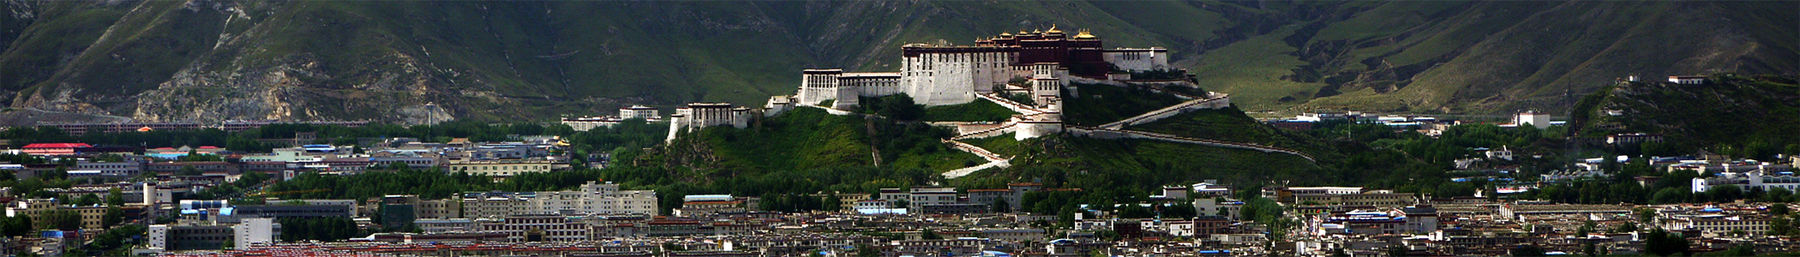 Lhasa from the Pabonka Monastery banner.jpg